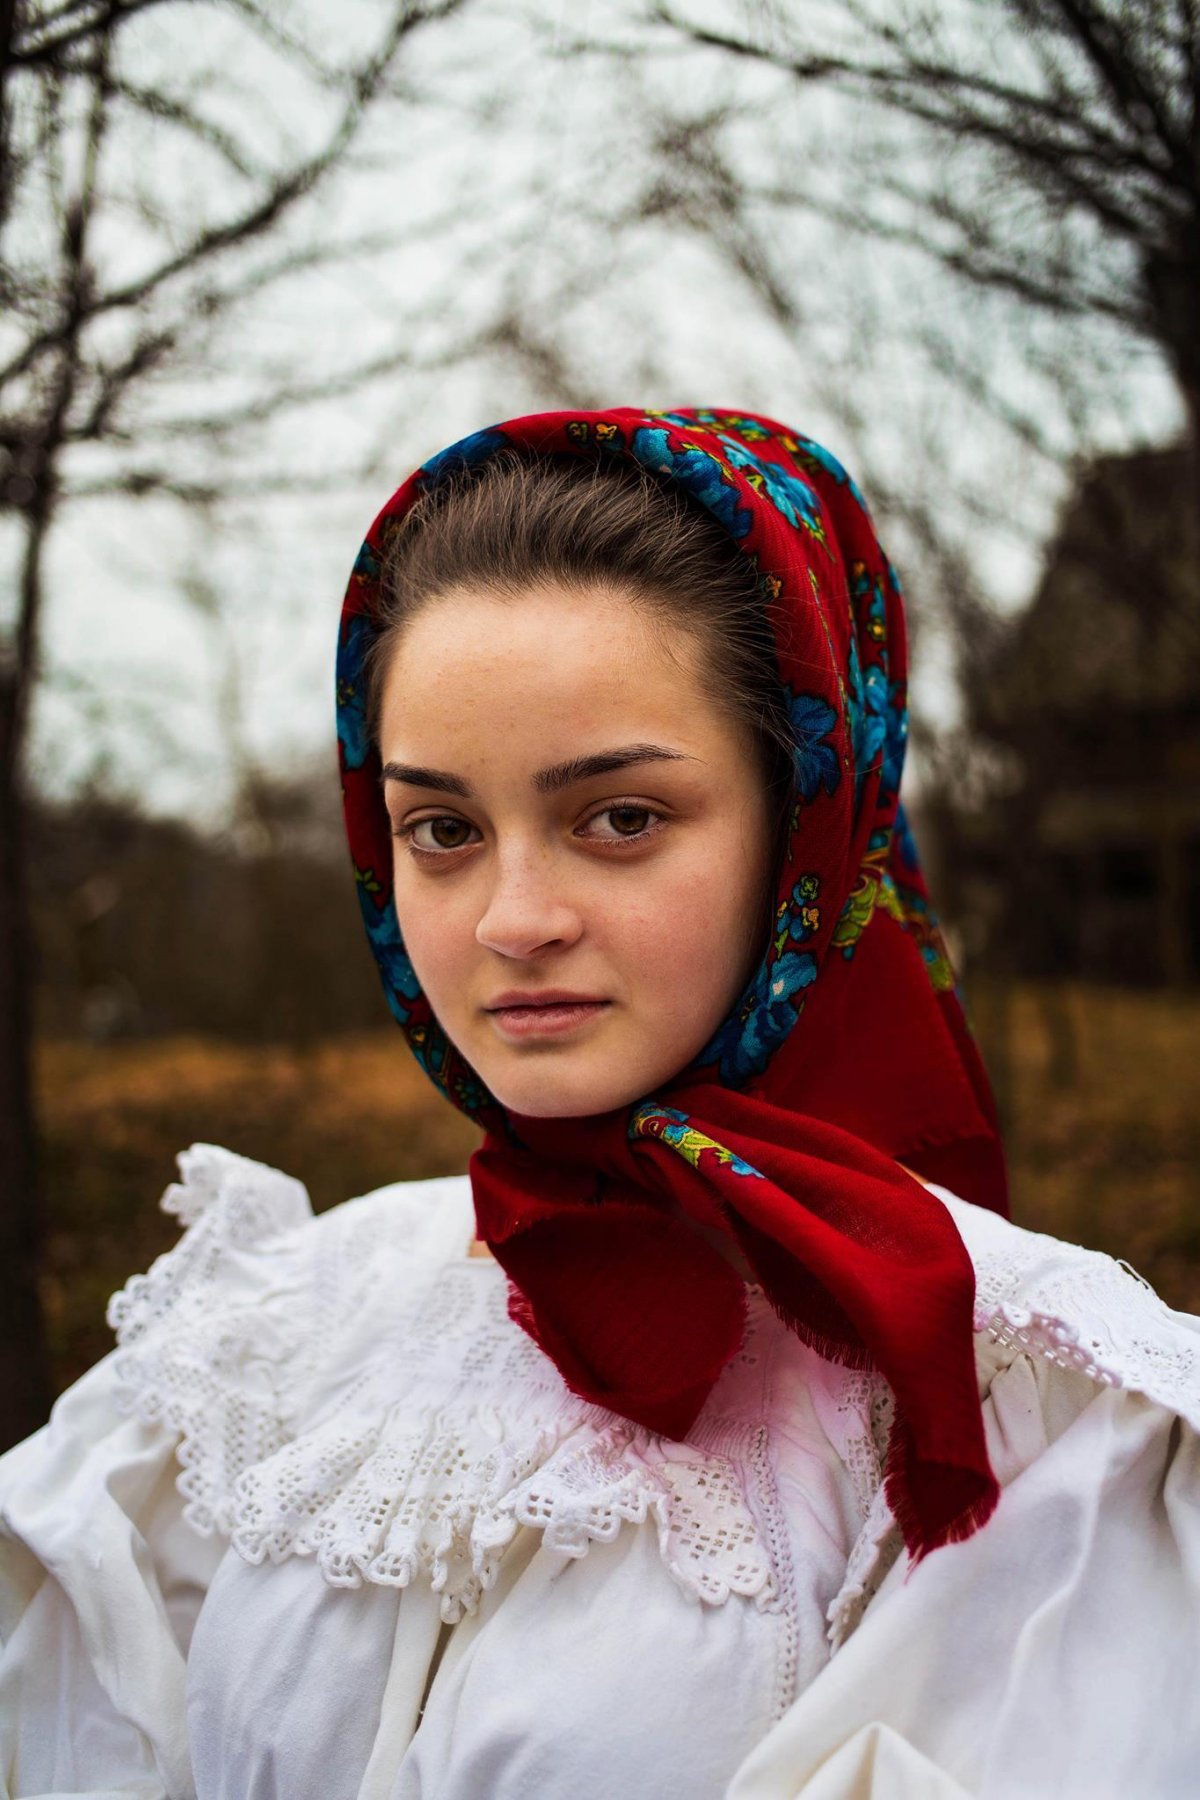 A woman photographed in Romania photographed by Mihaela Noroc